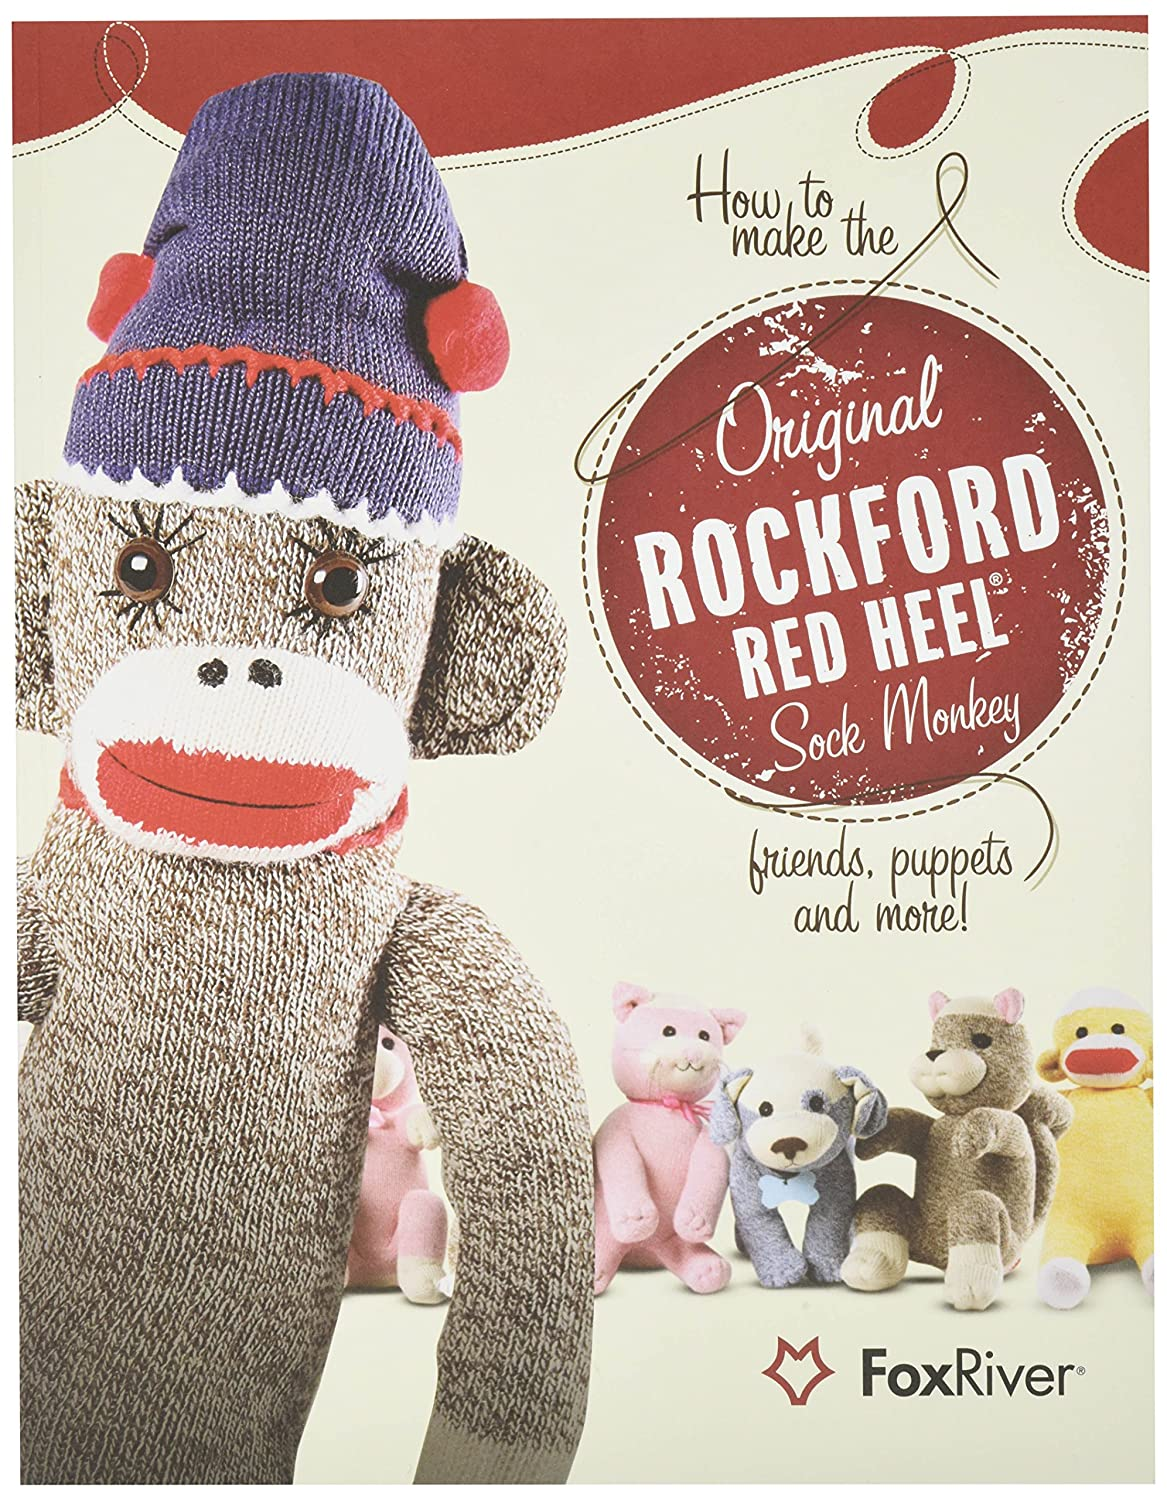 Fox River How to Make the Original Rockford Red Heel Sock Monkey, Friends, Puppets and More! 123456